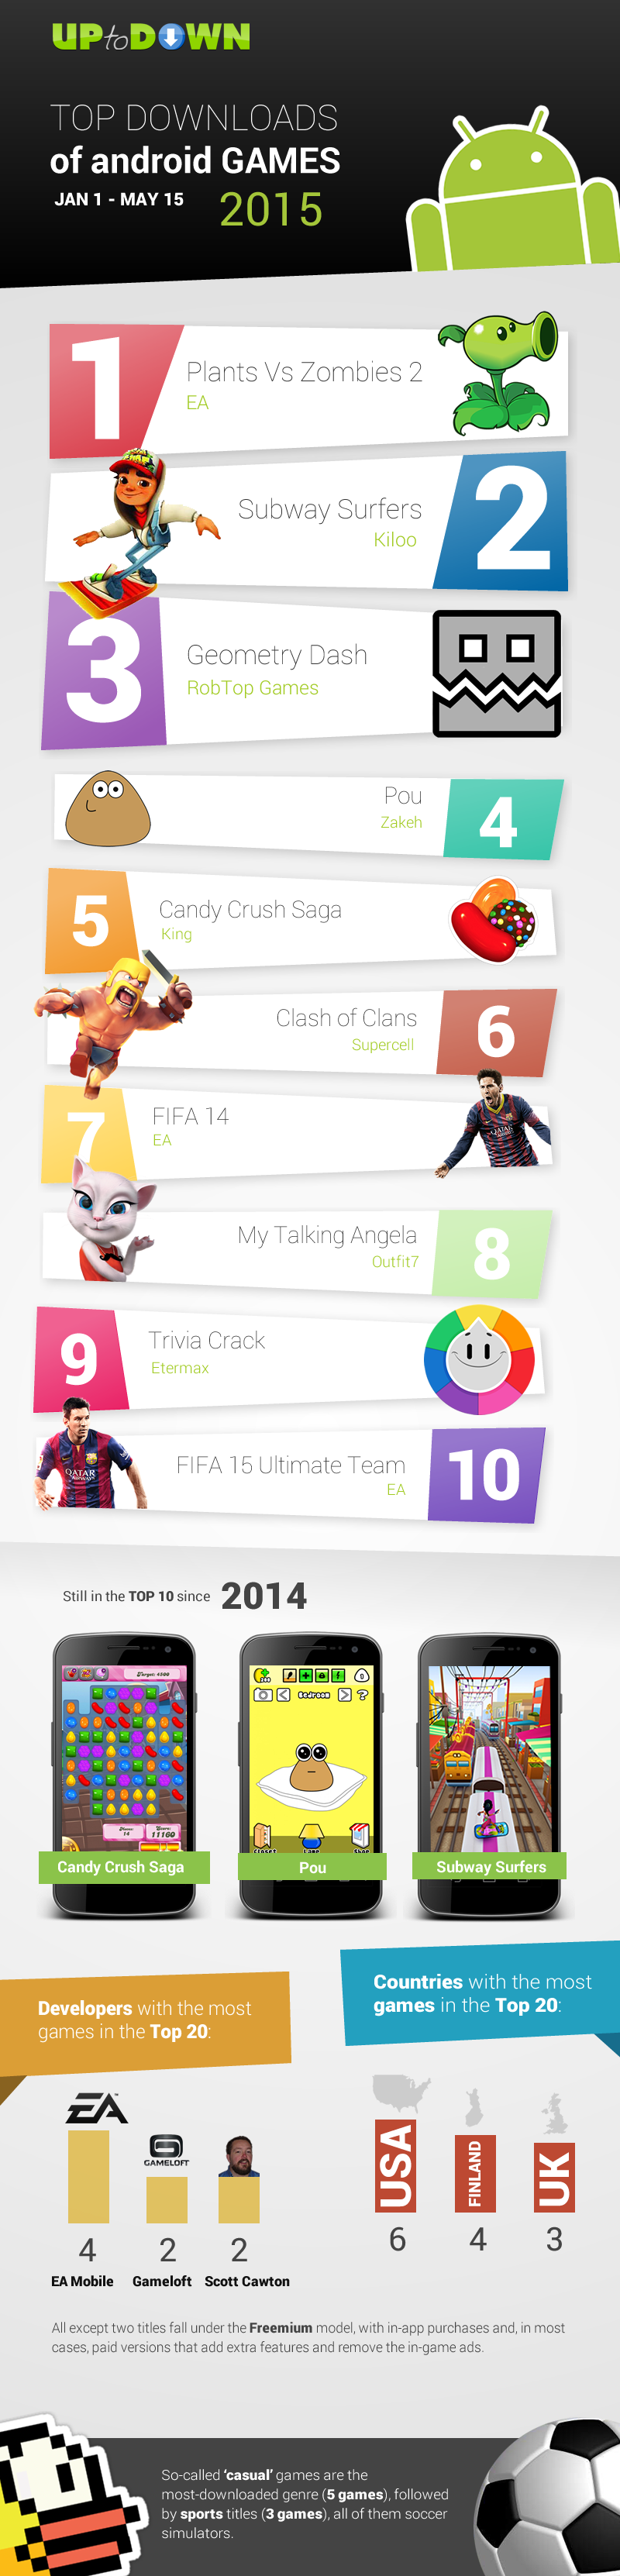 most downloaded games Android 2015